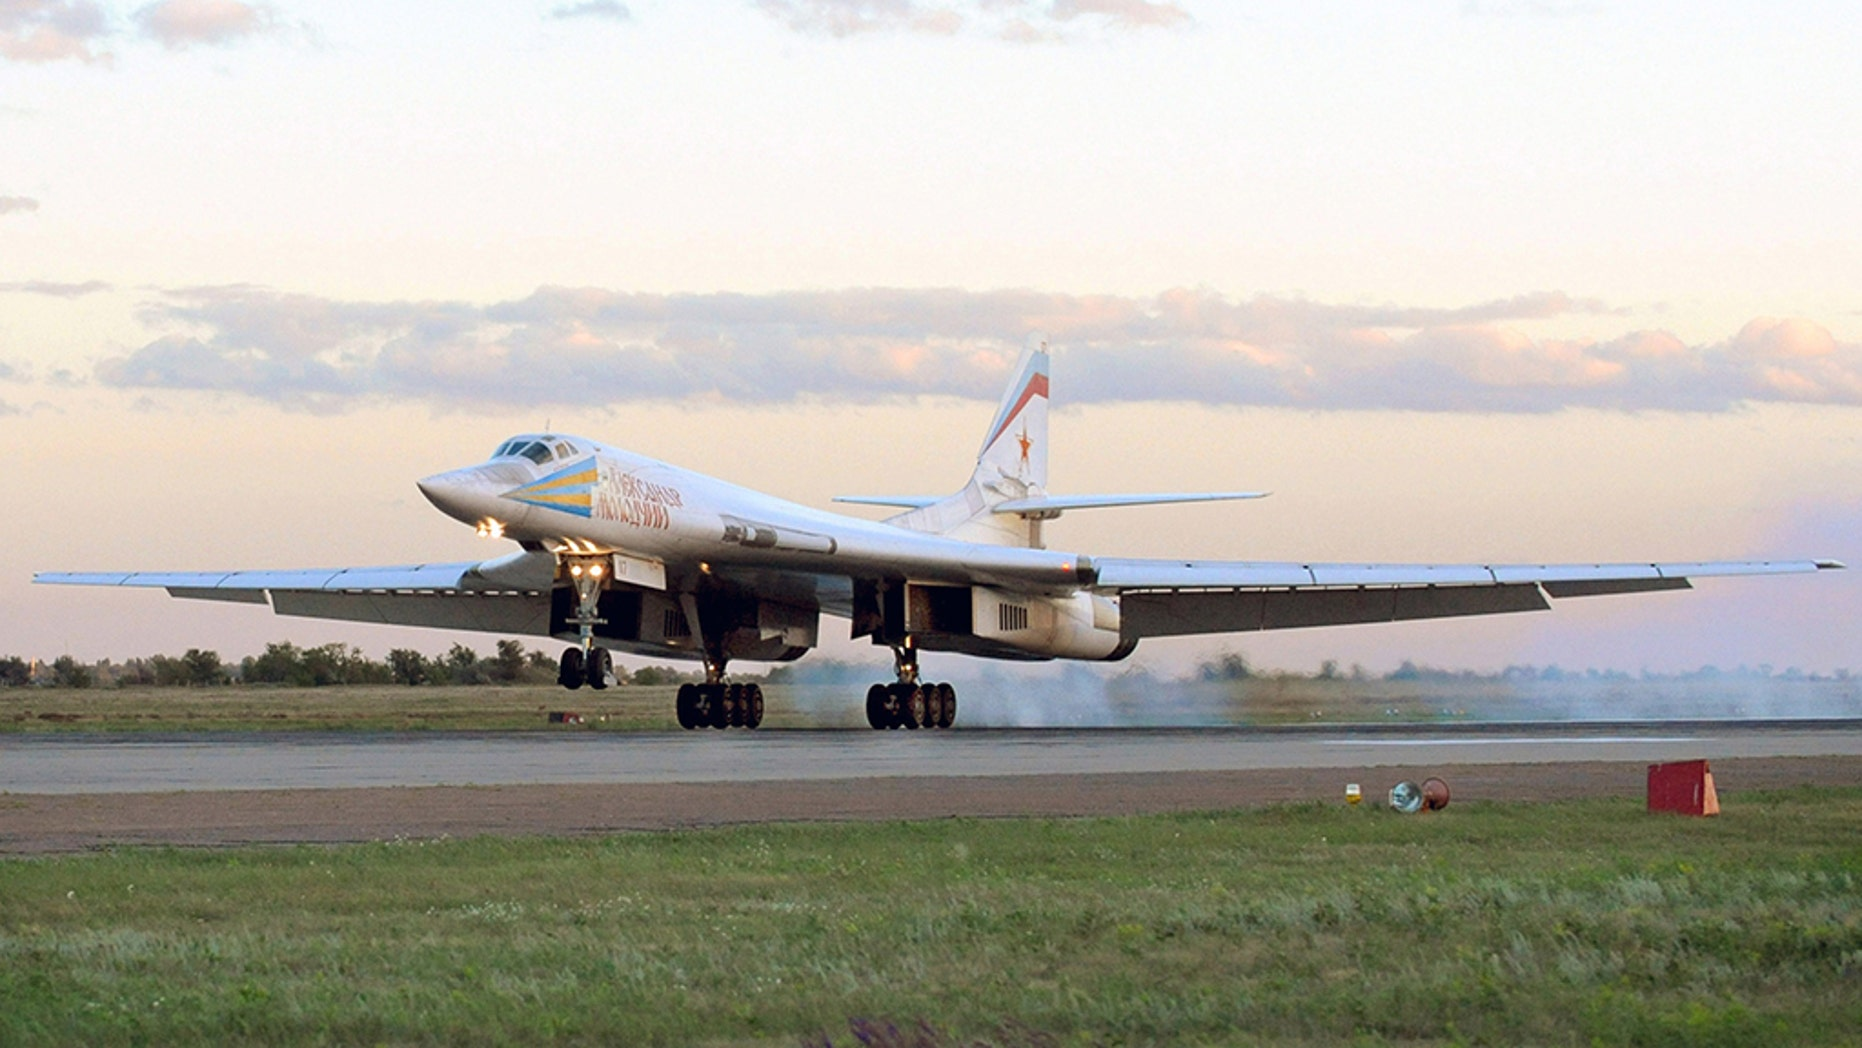 A Tu-160 bomber lands in 2008 at a Russian Air Force base. (Photo by Wojtek Laski / Getty Images)